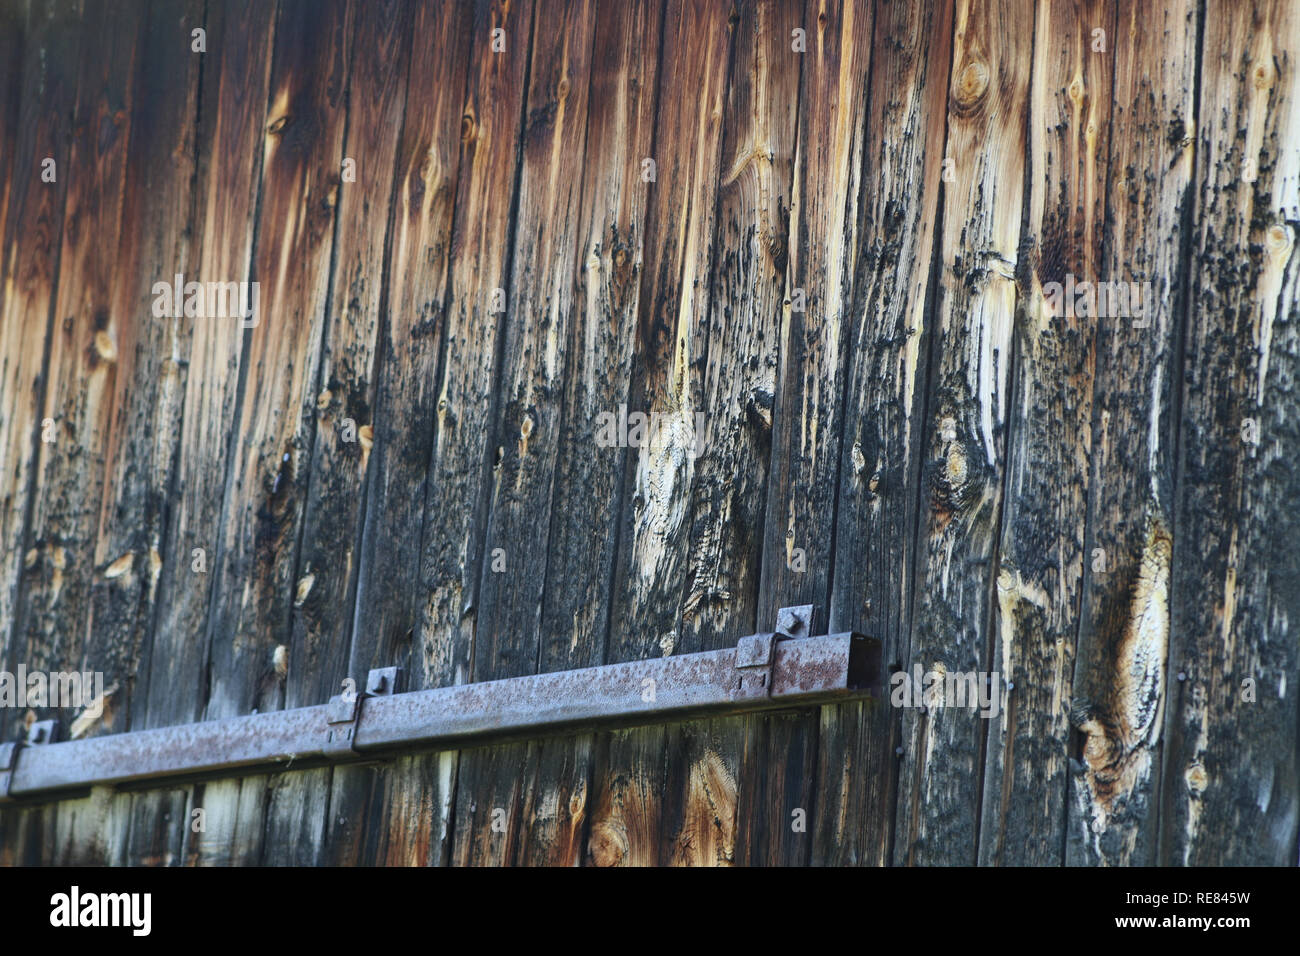 Old barn wood with metal ferring - Stock Image